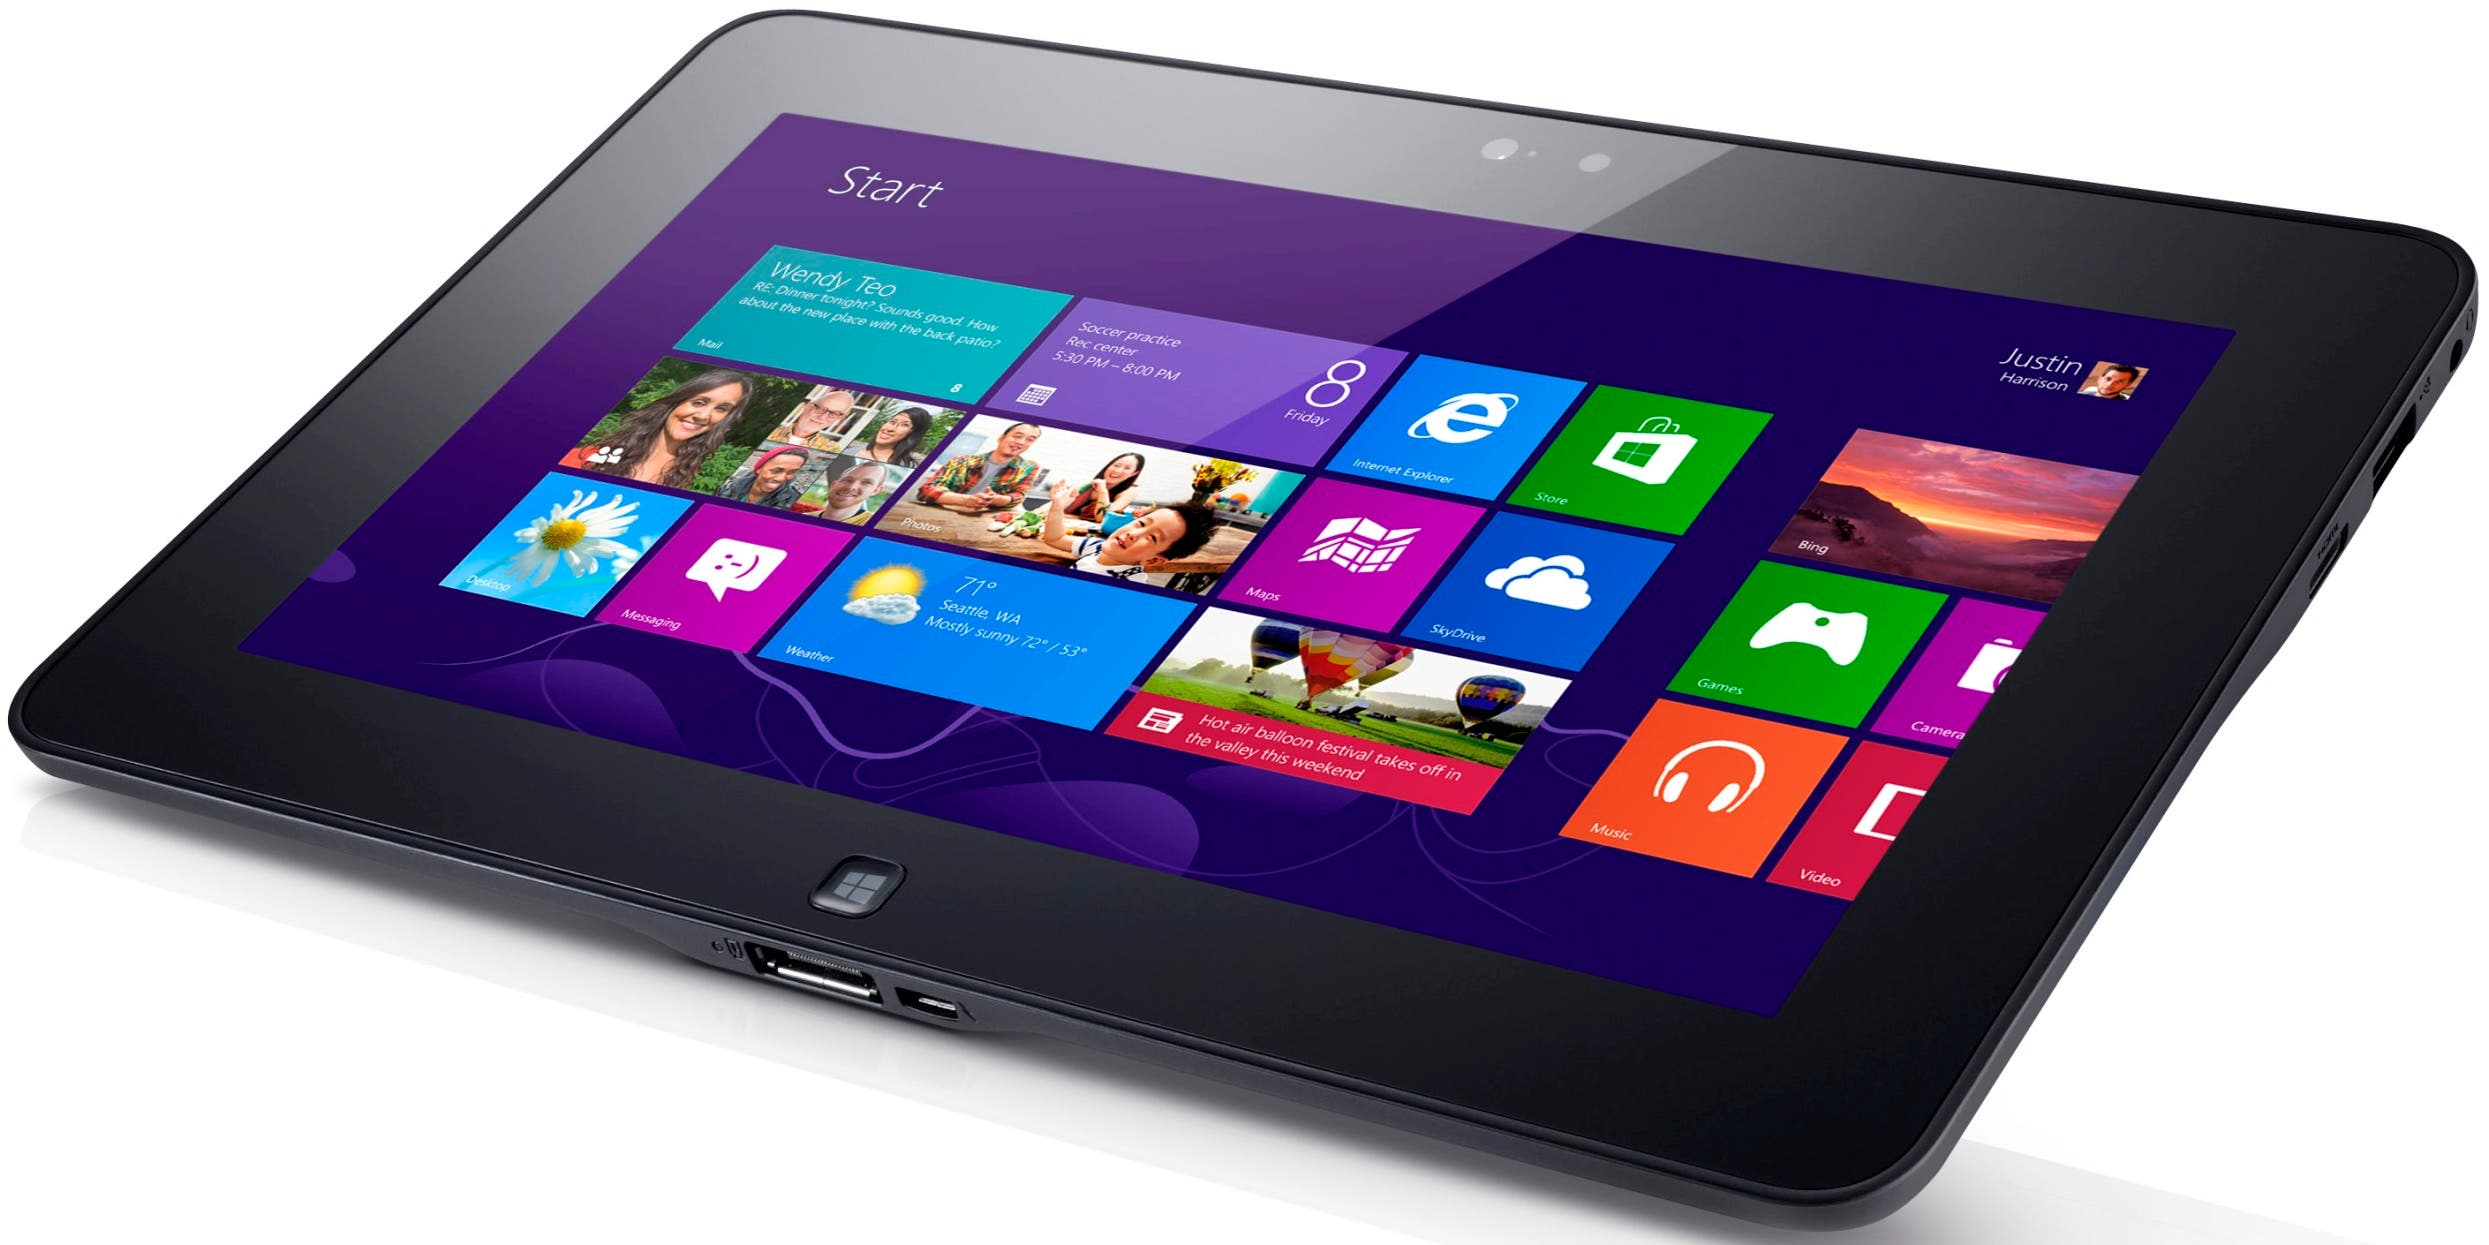 Dell Latitude 10 Windows 8-Tablet mit austauschbarem Akku in Video vorgestellt